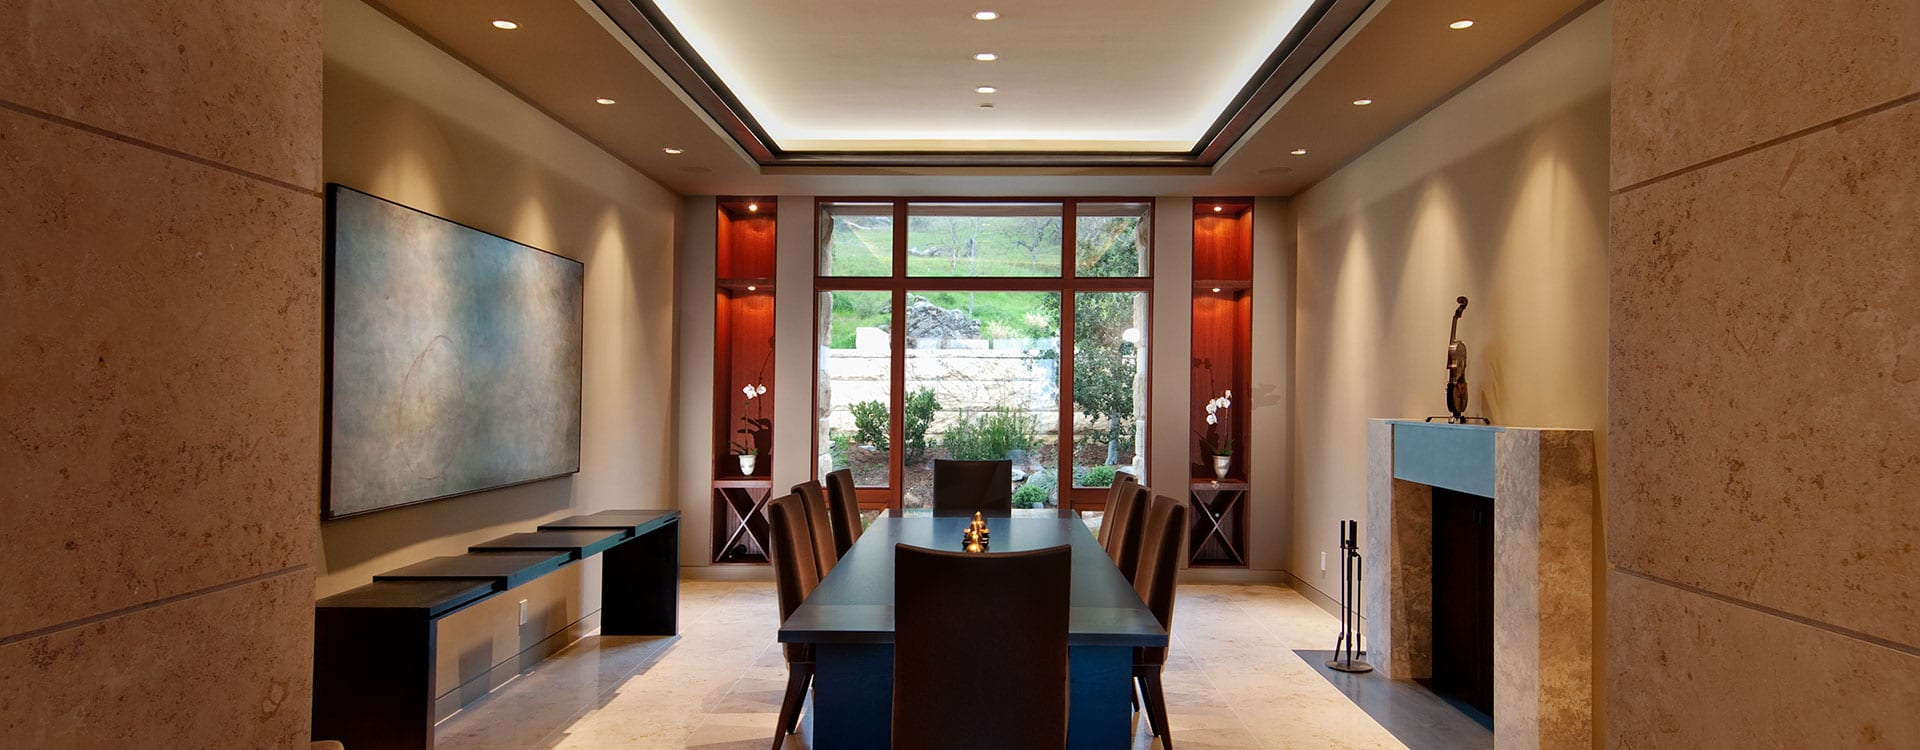 Modern bronze clad windows in dining room of a home on the Santa Lucia Preserve